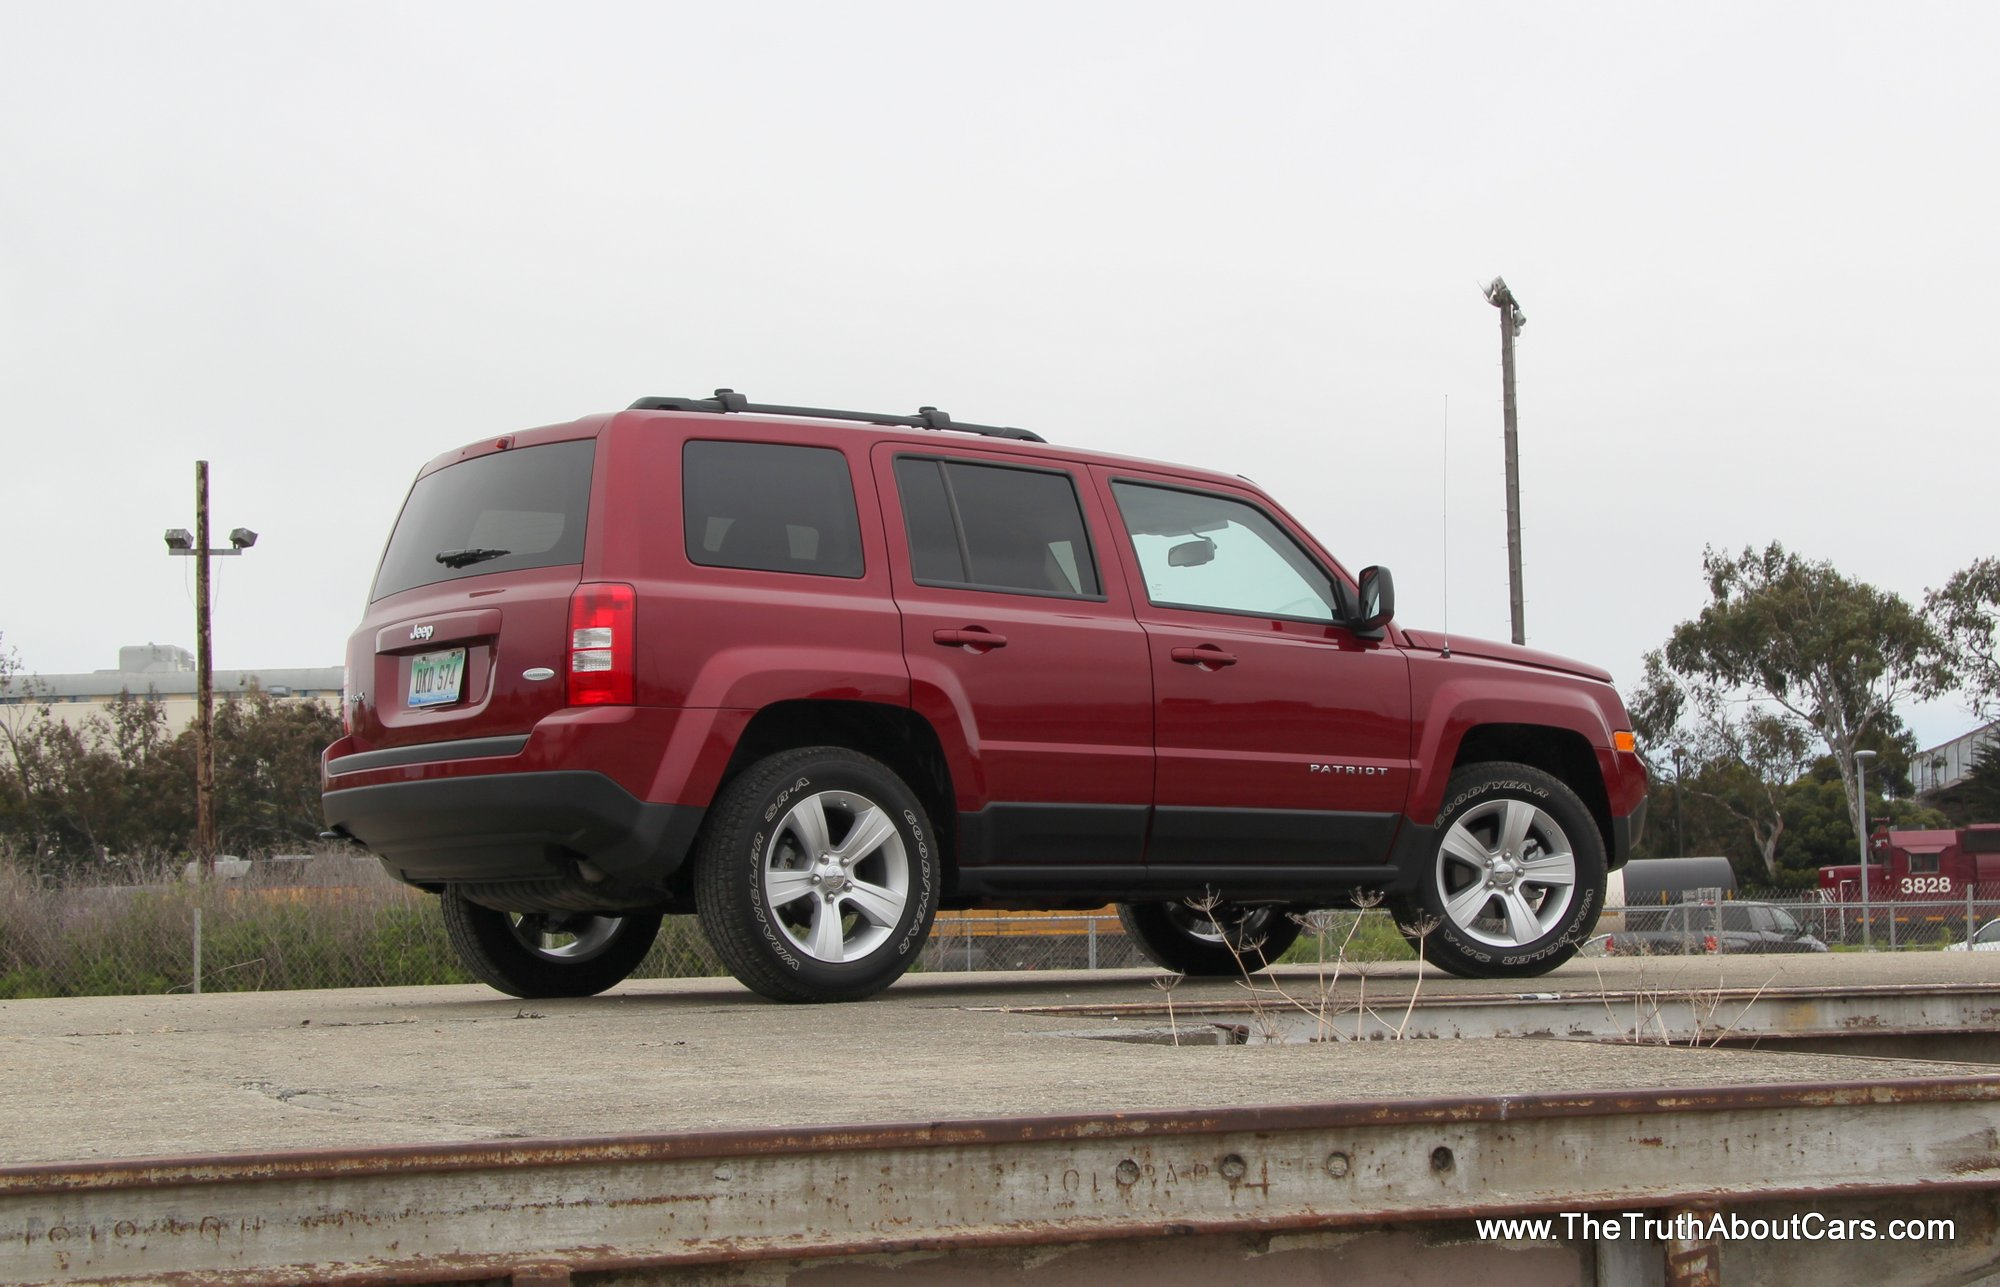 Cars Com Dealer Reviews >> Review: 2012 Jeep Patriot Latitude - The Truth About Cars